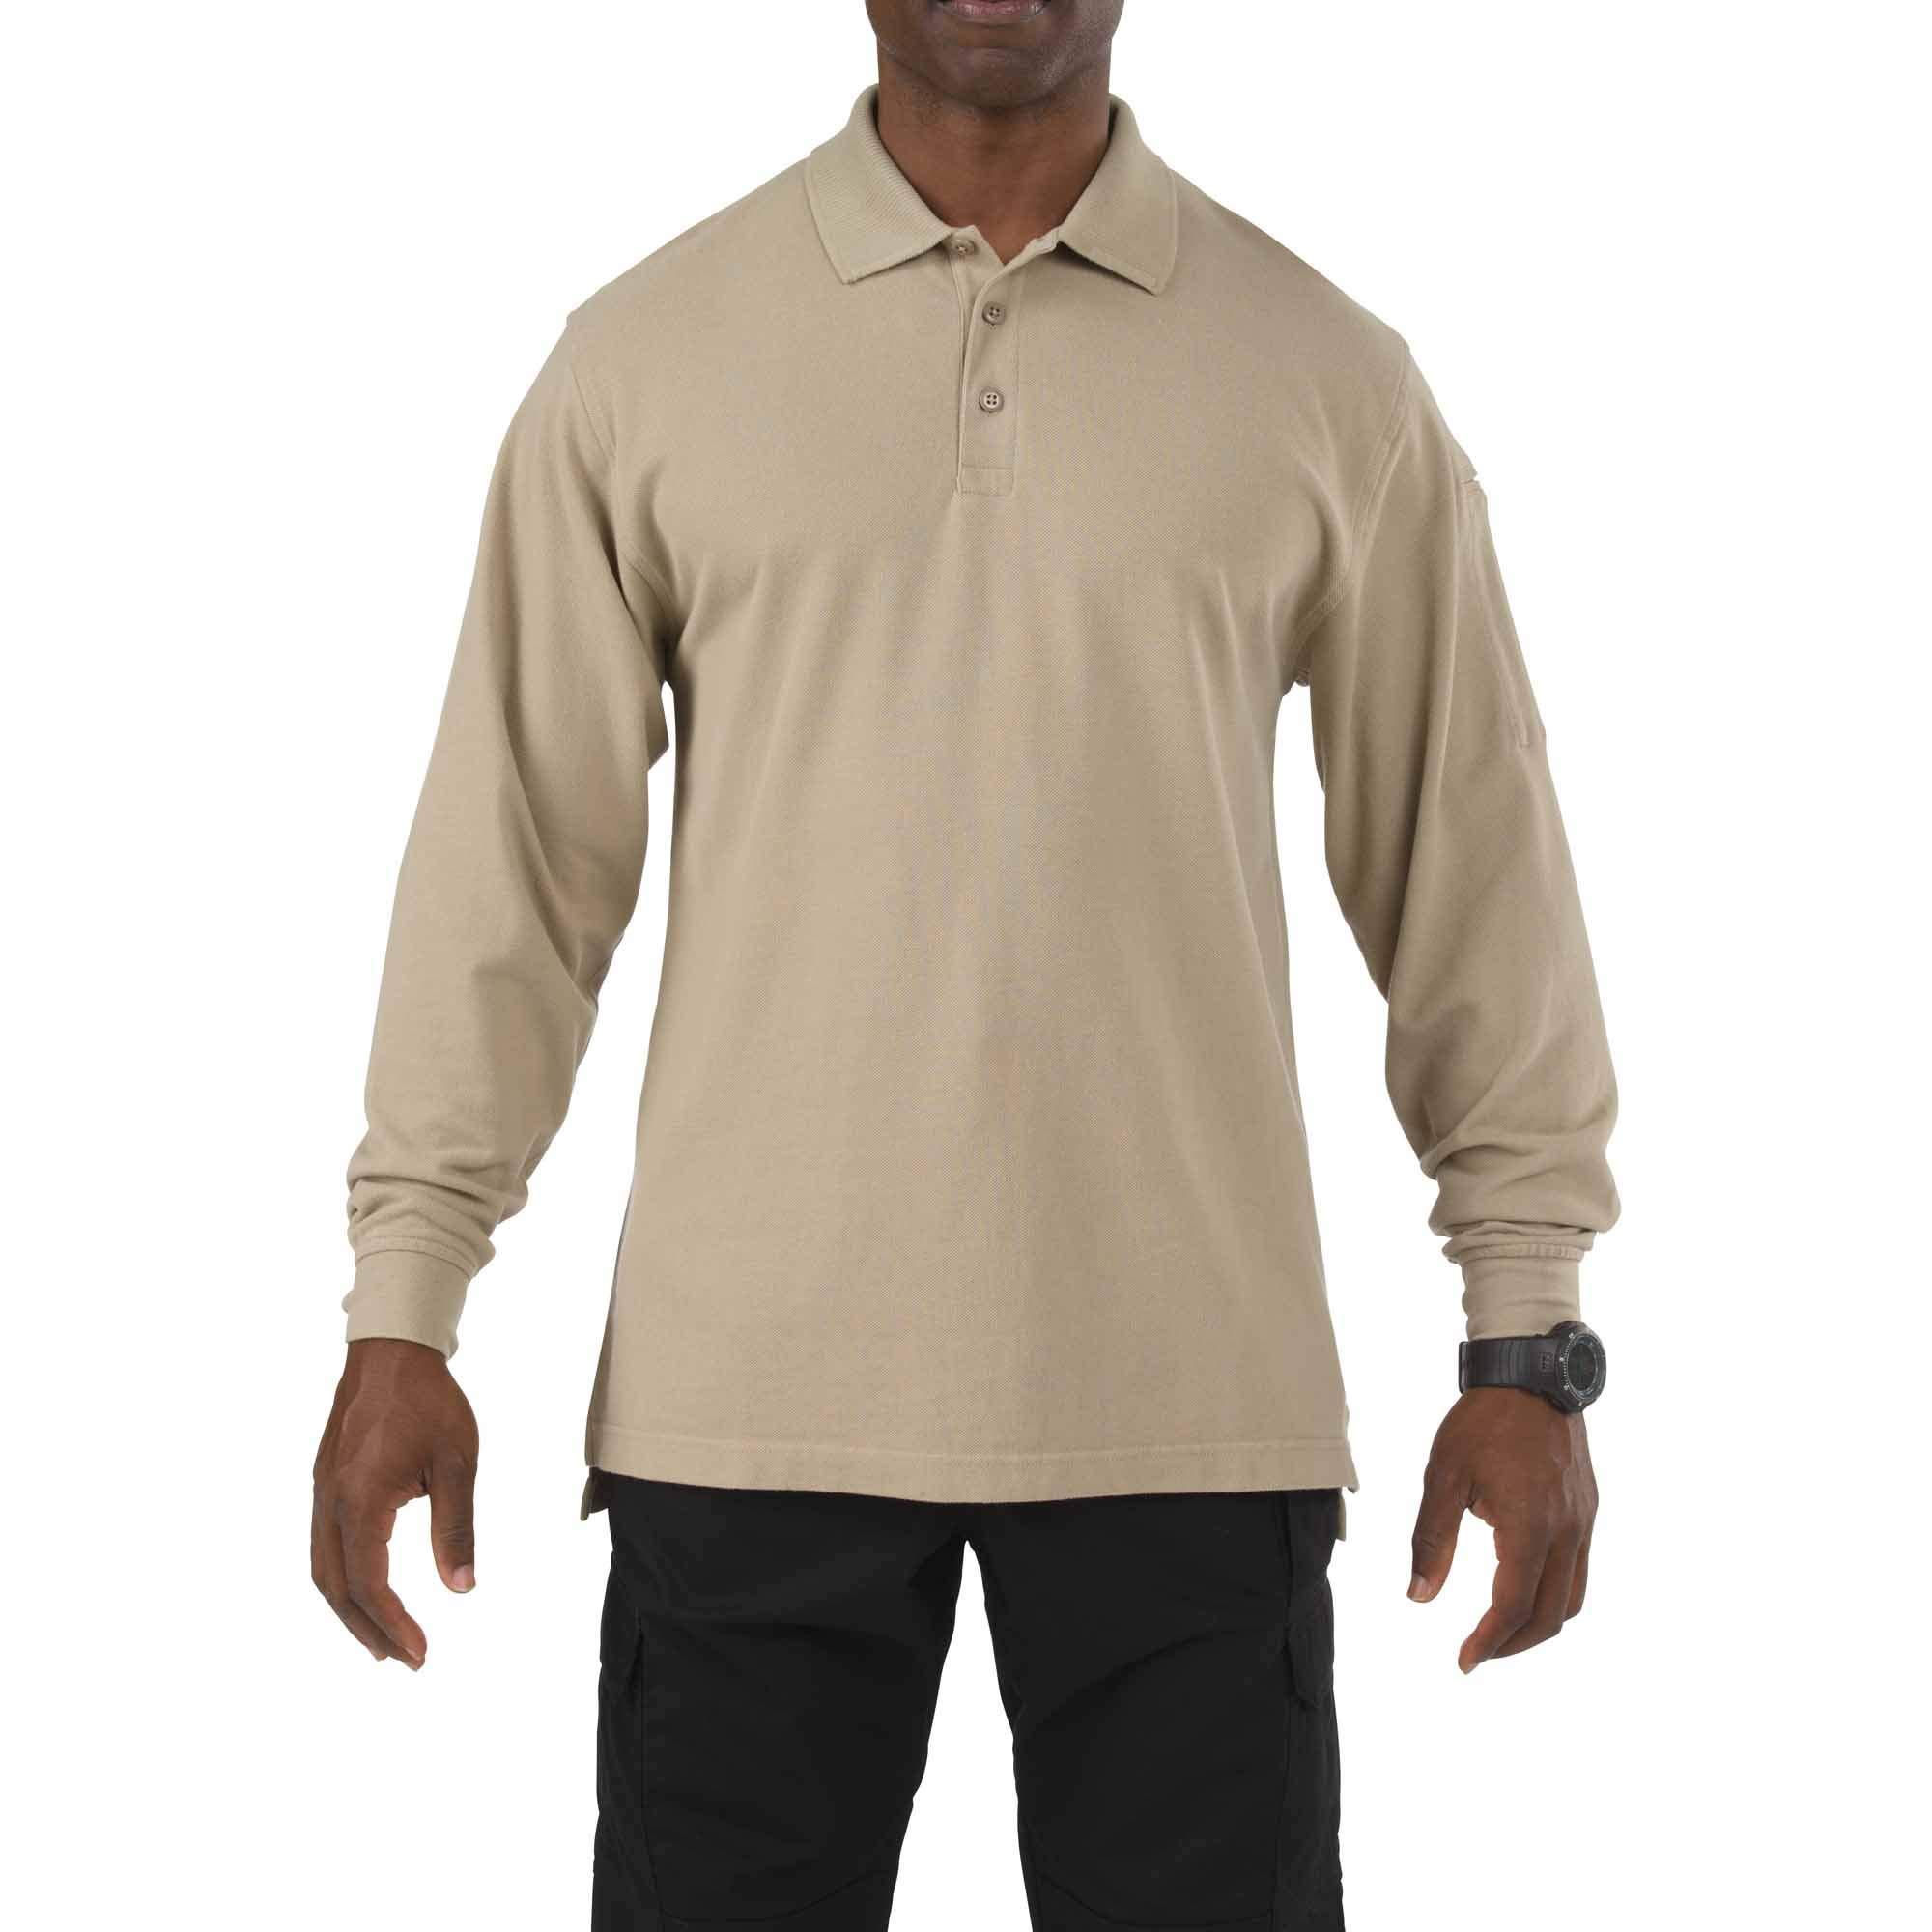 5.11 Tactical Long Sleeve Tall Professional Polo Shirt, Silver Tan, XX-Large by 5.11